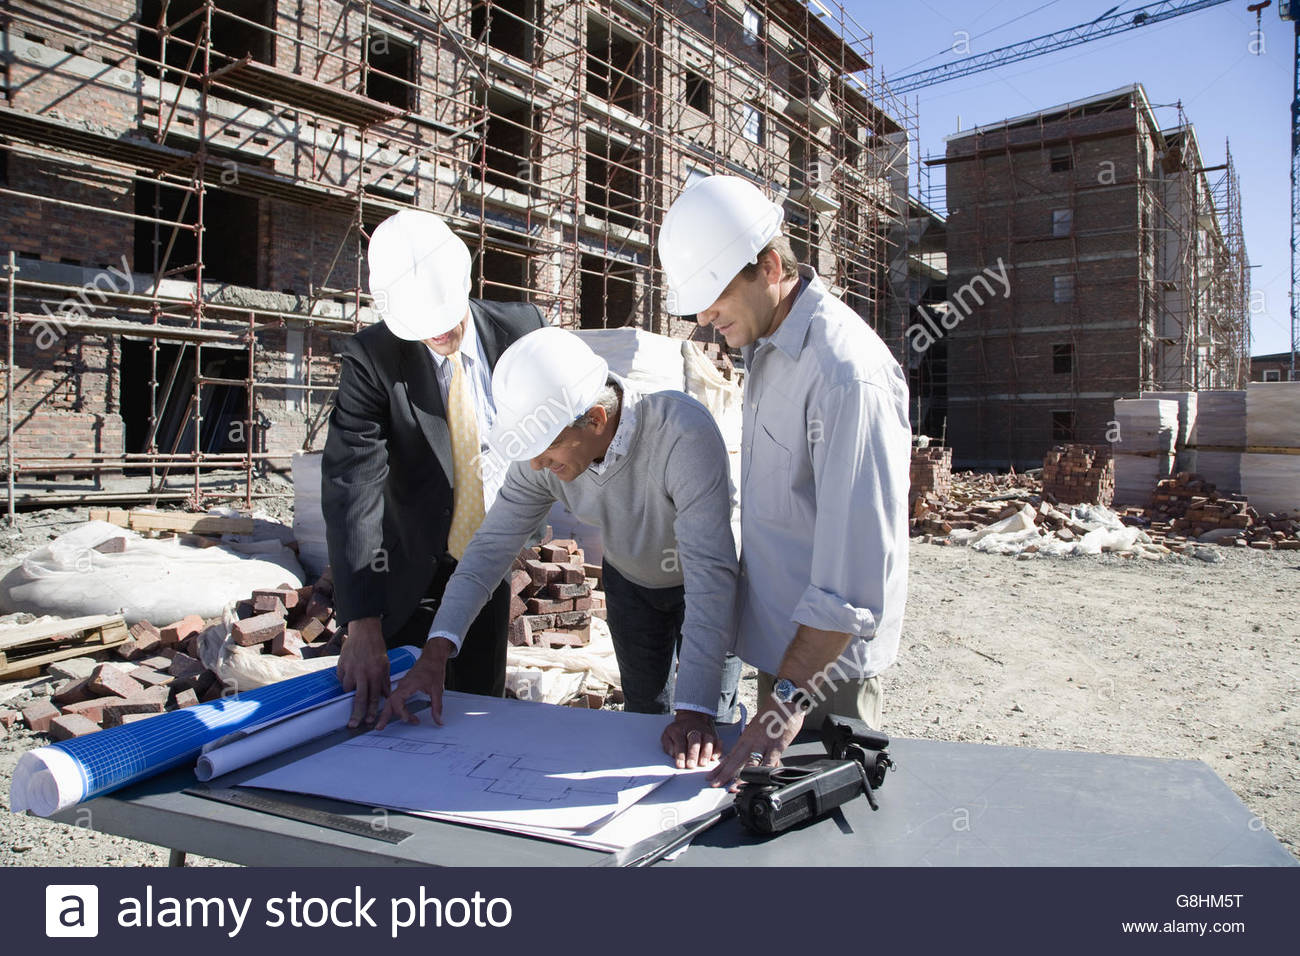 Foreman and co workers looking at blueprints on construction site foreman and co workers looking at blueprints on construction site malvernweather Image collections